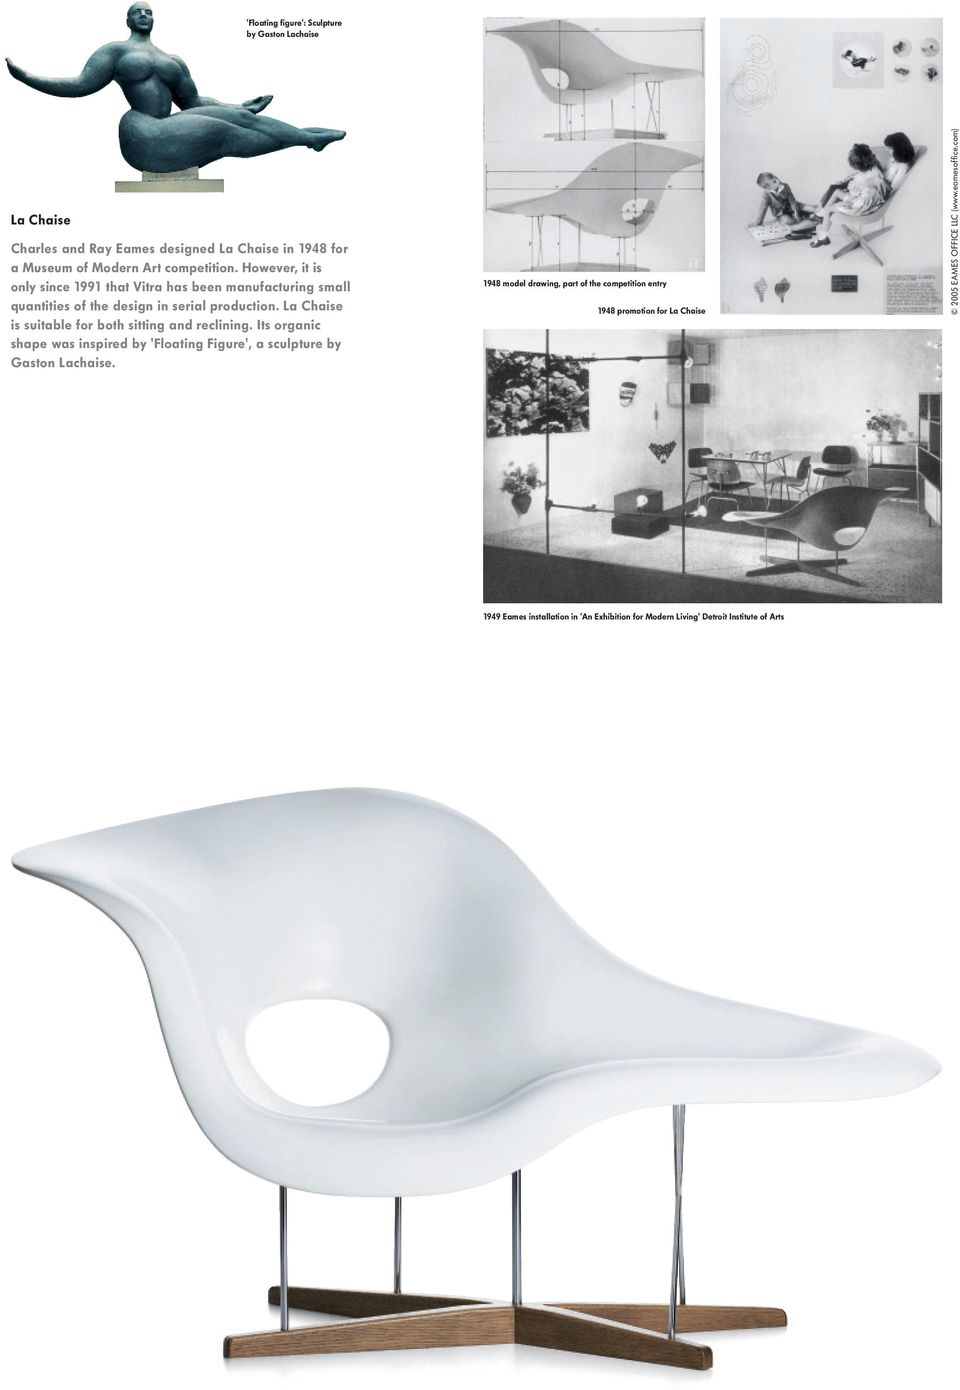 La Chaise is suitable for both sitting and reclining. Its organic shape was inspired by 'Floating Figure', a sculpture by Gaston Lachaise.